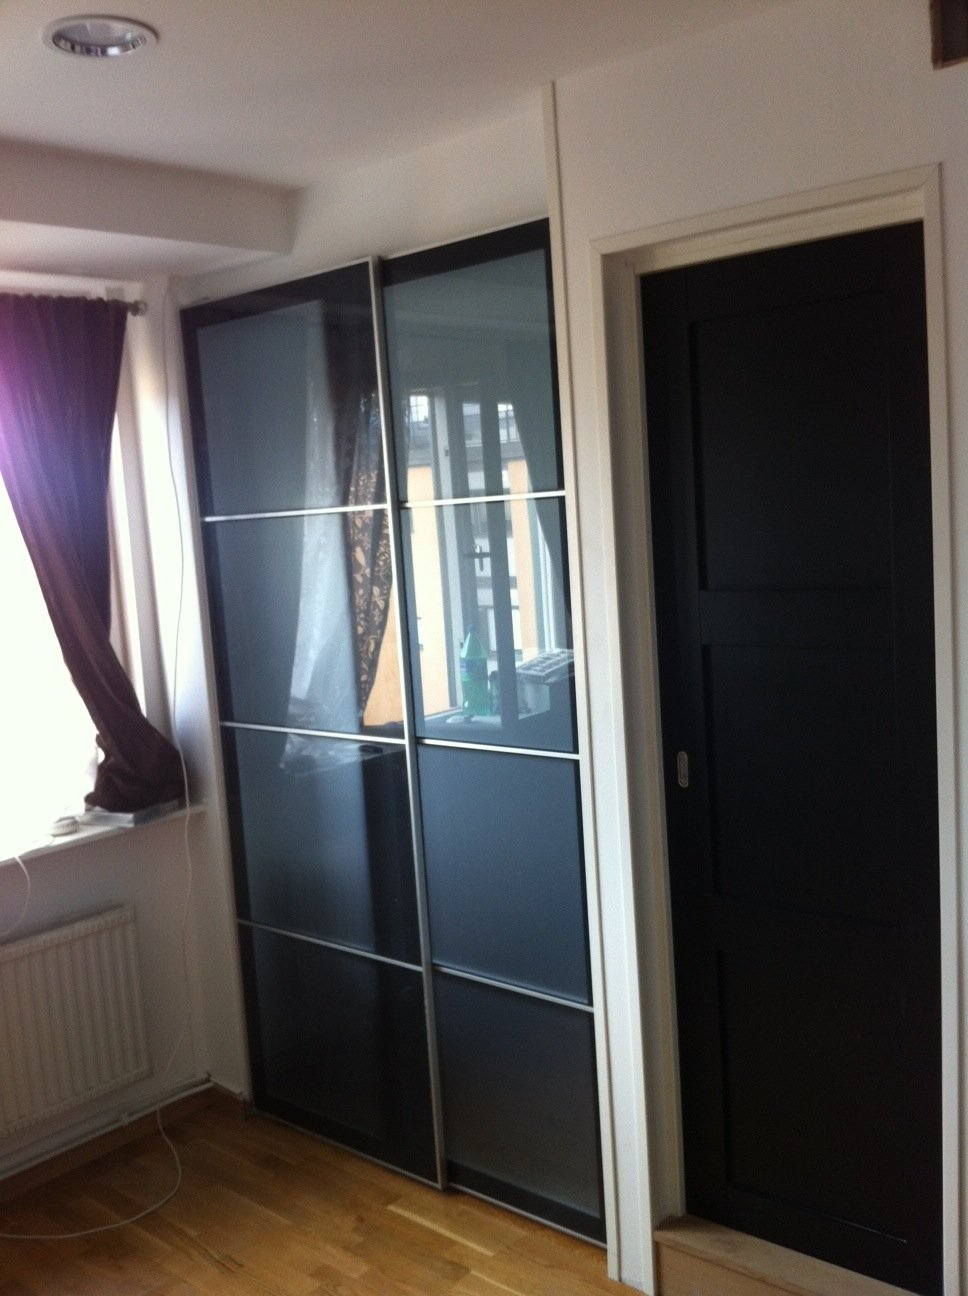 Sliding doors ikea all about home ideas best sliding doors ideas - Ikea Sliding Door For Sleeping Alcove Tight Spaces